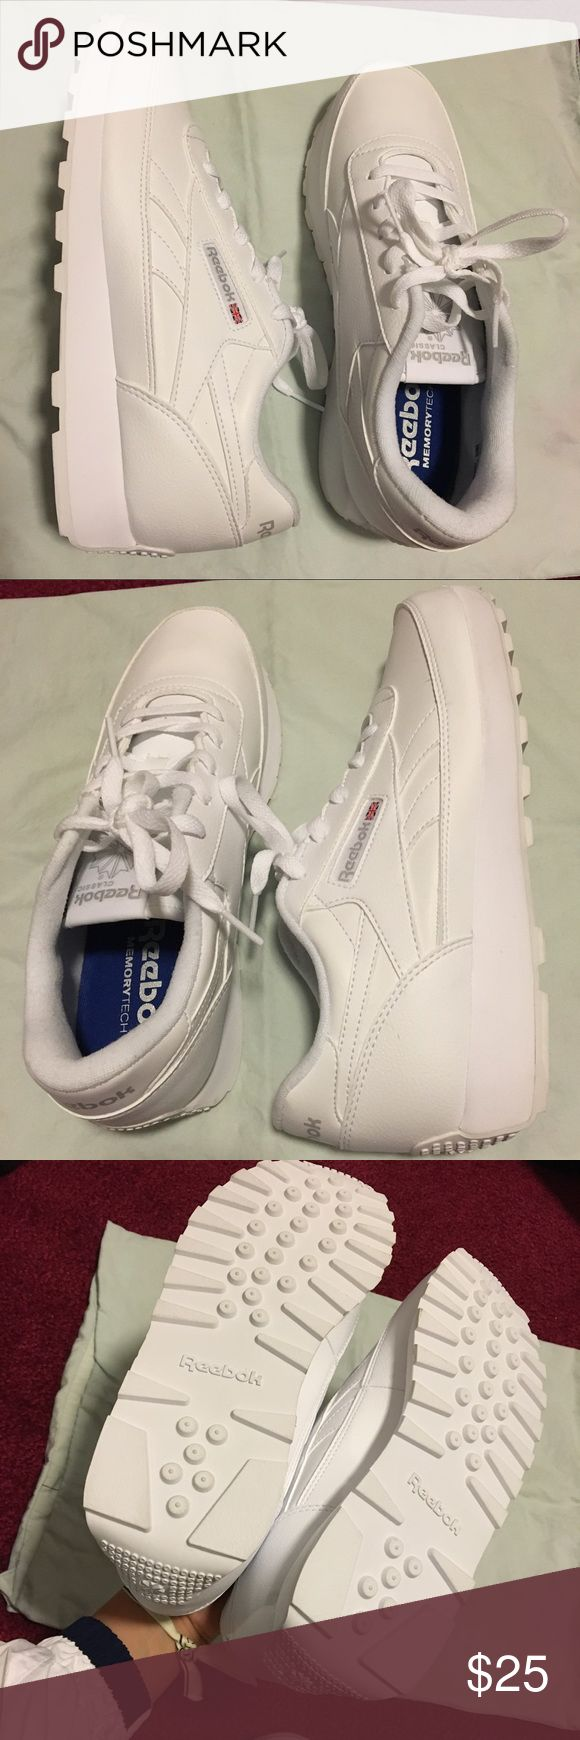 Reebok Classic Renaissance Sneaker Price negotiable! Brand new without box. Feel free to ask questions or for more pictures in the comments or text me at (415) 806-5373. Reebok Shoes Sneakers